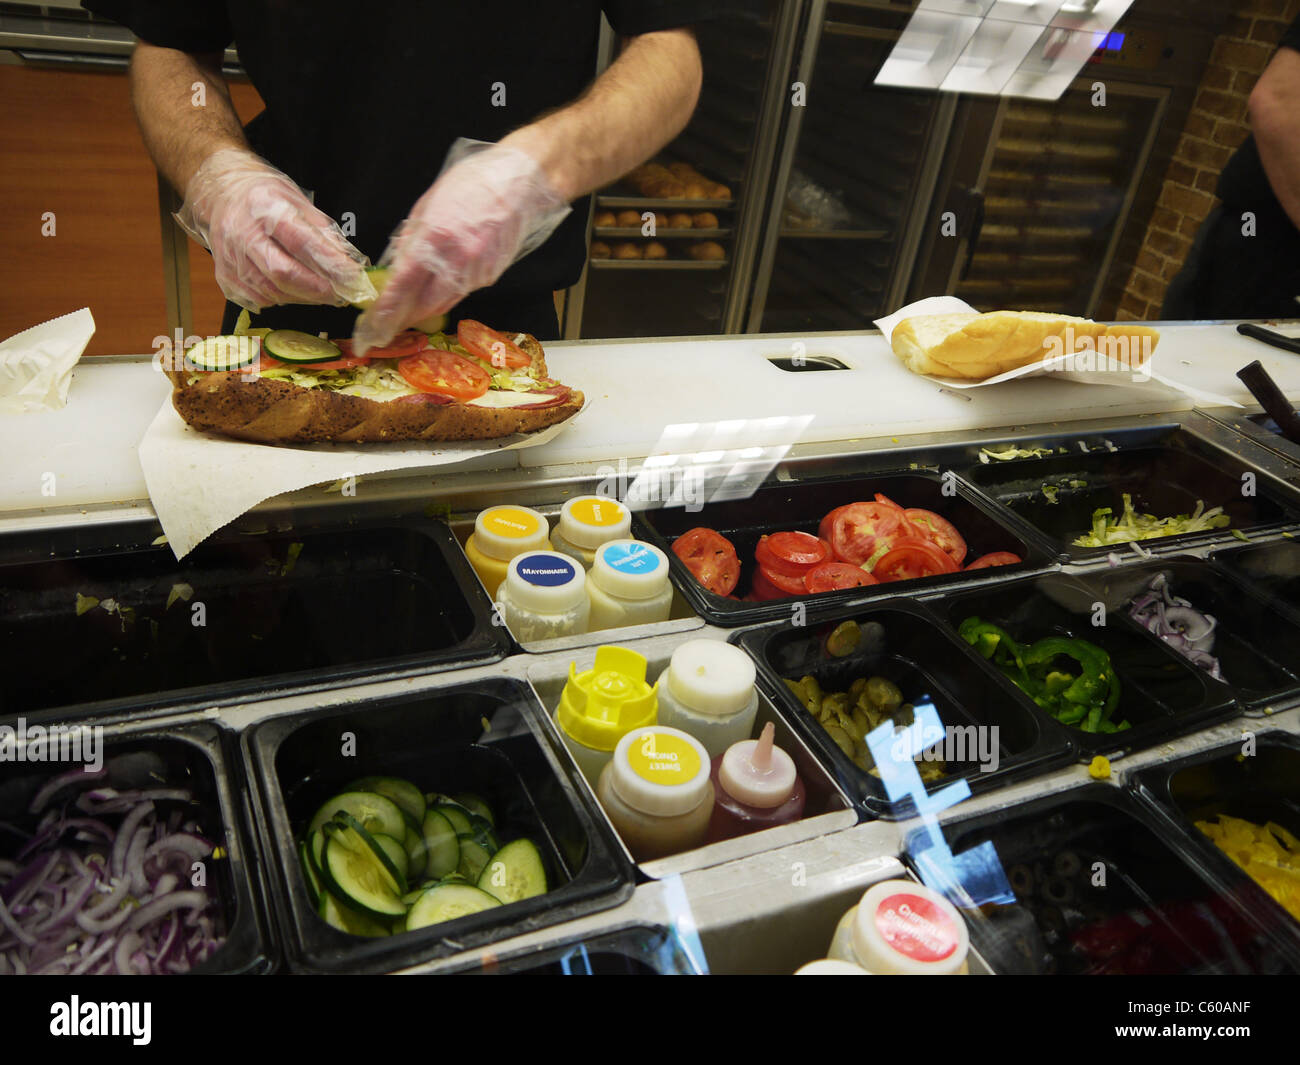 Fast Food Making A Sandwich At Subway Stock Photo